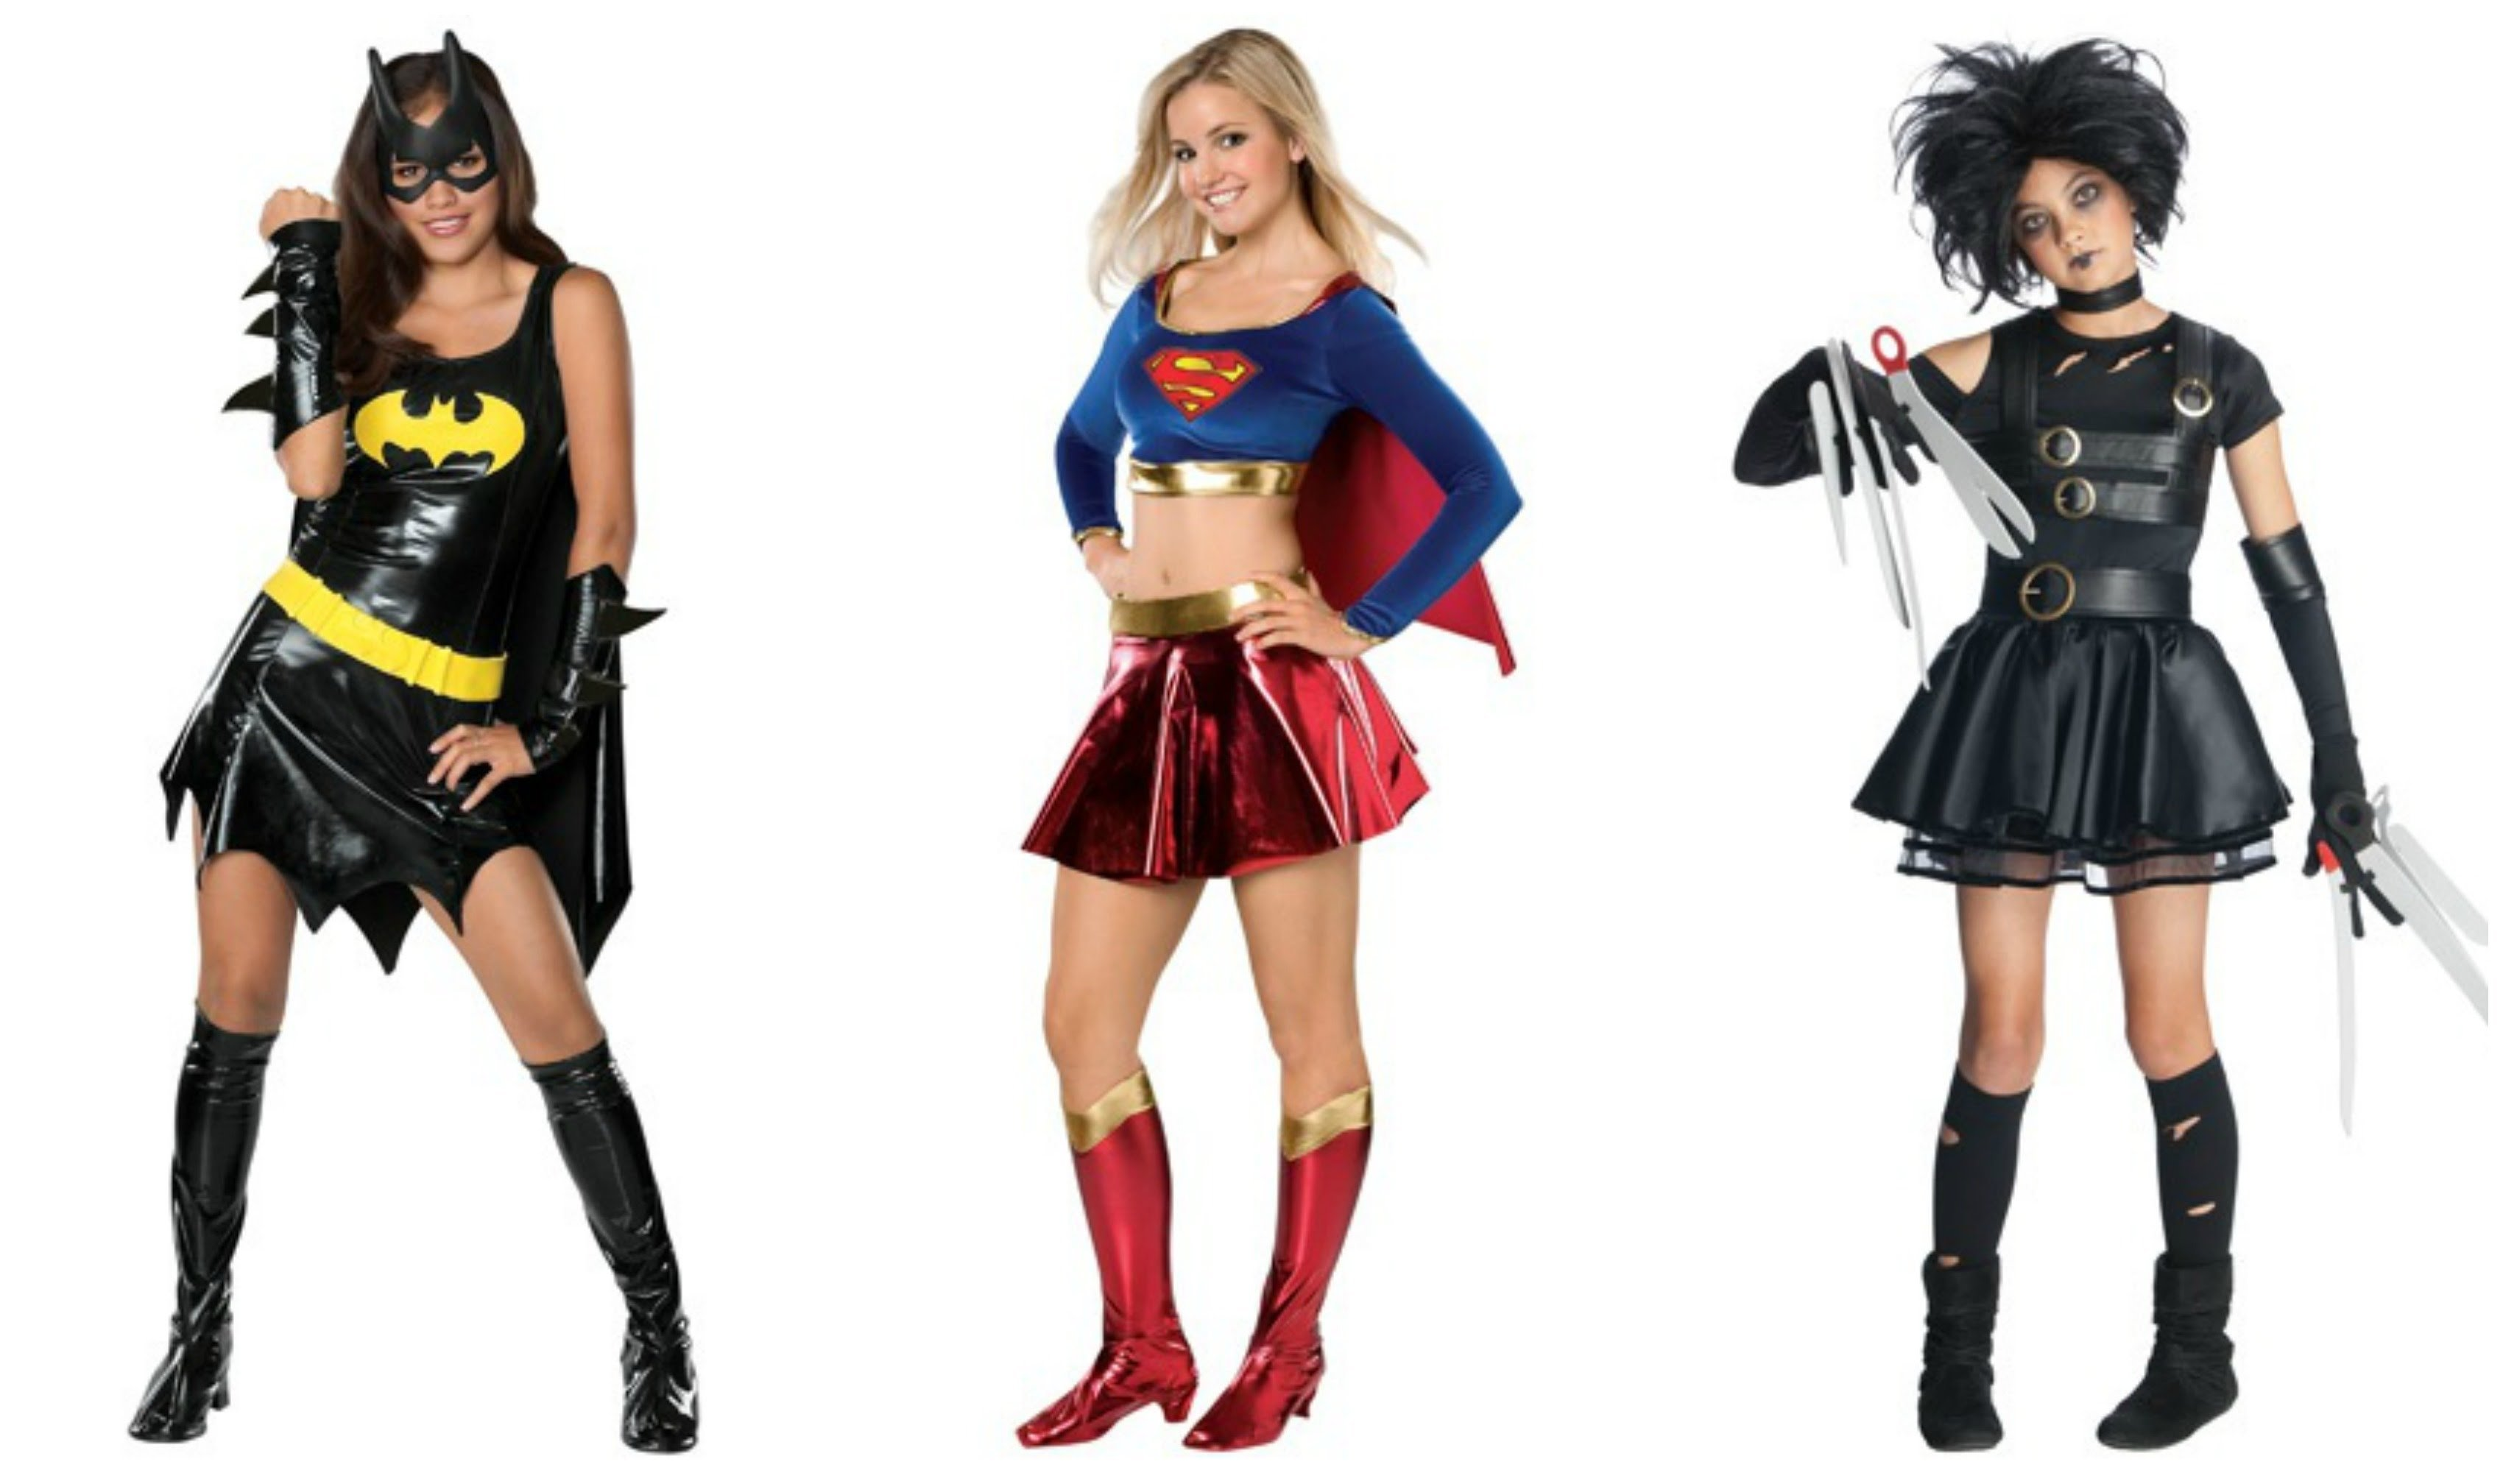 10 Beautiful Funny Female Halloween Costume Ideas halloween costume ideas for teens girls youtube halloween costumes 8 2021